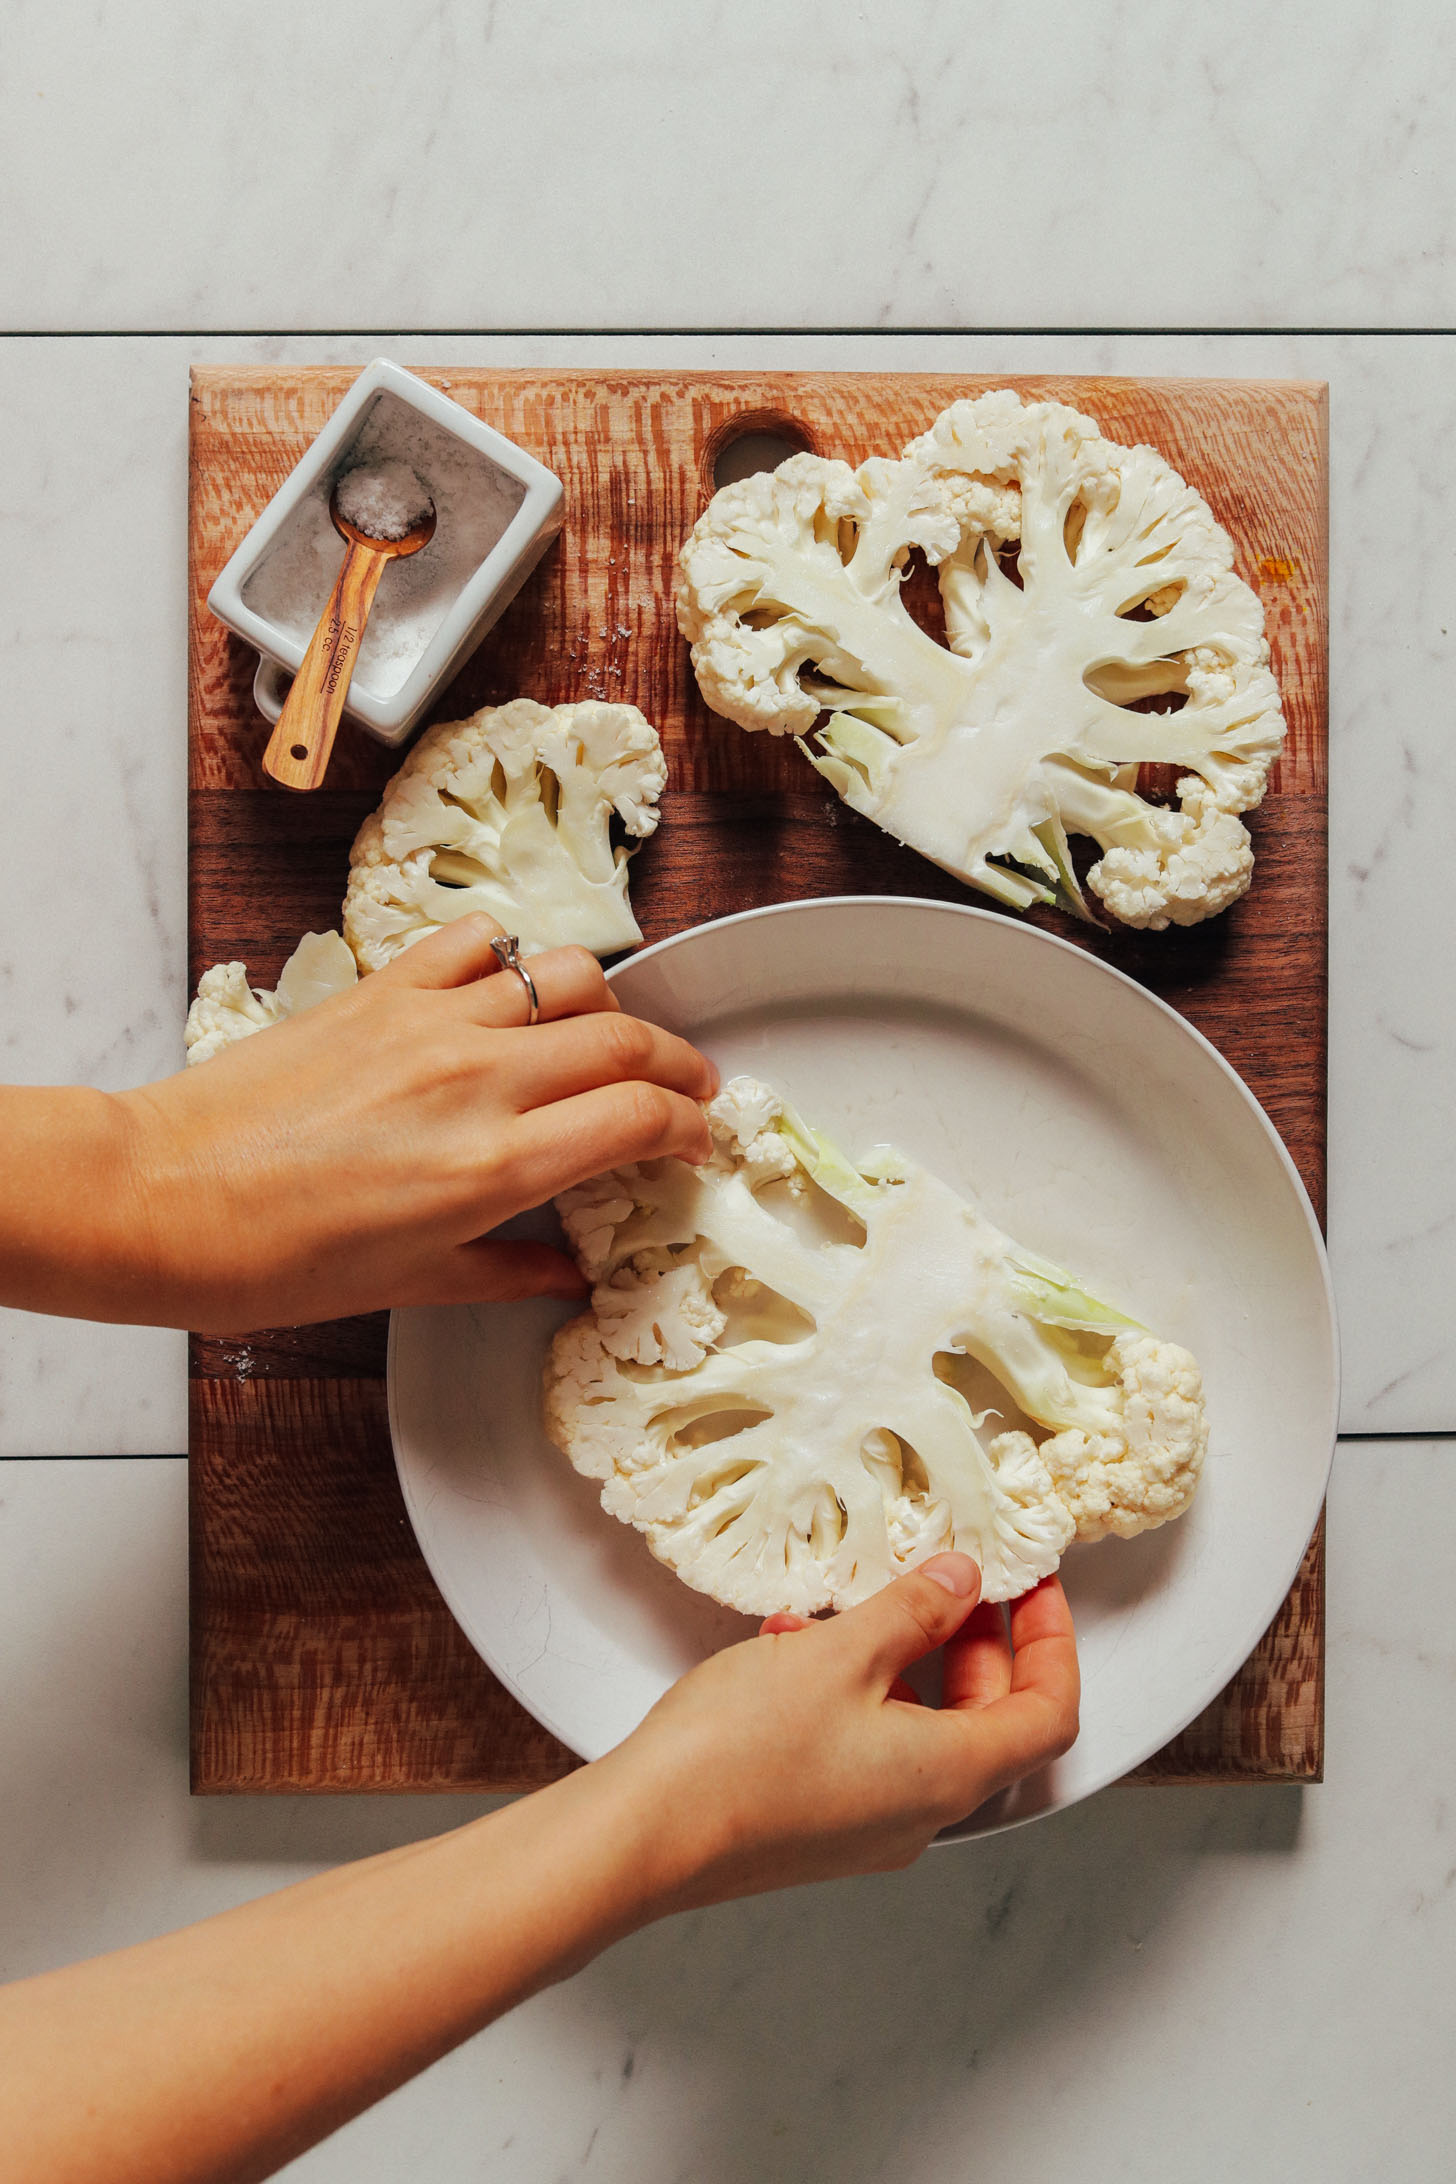 Coating cauliflower in a bowl of dairy-free milk before dipping in crust batter